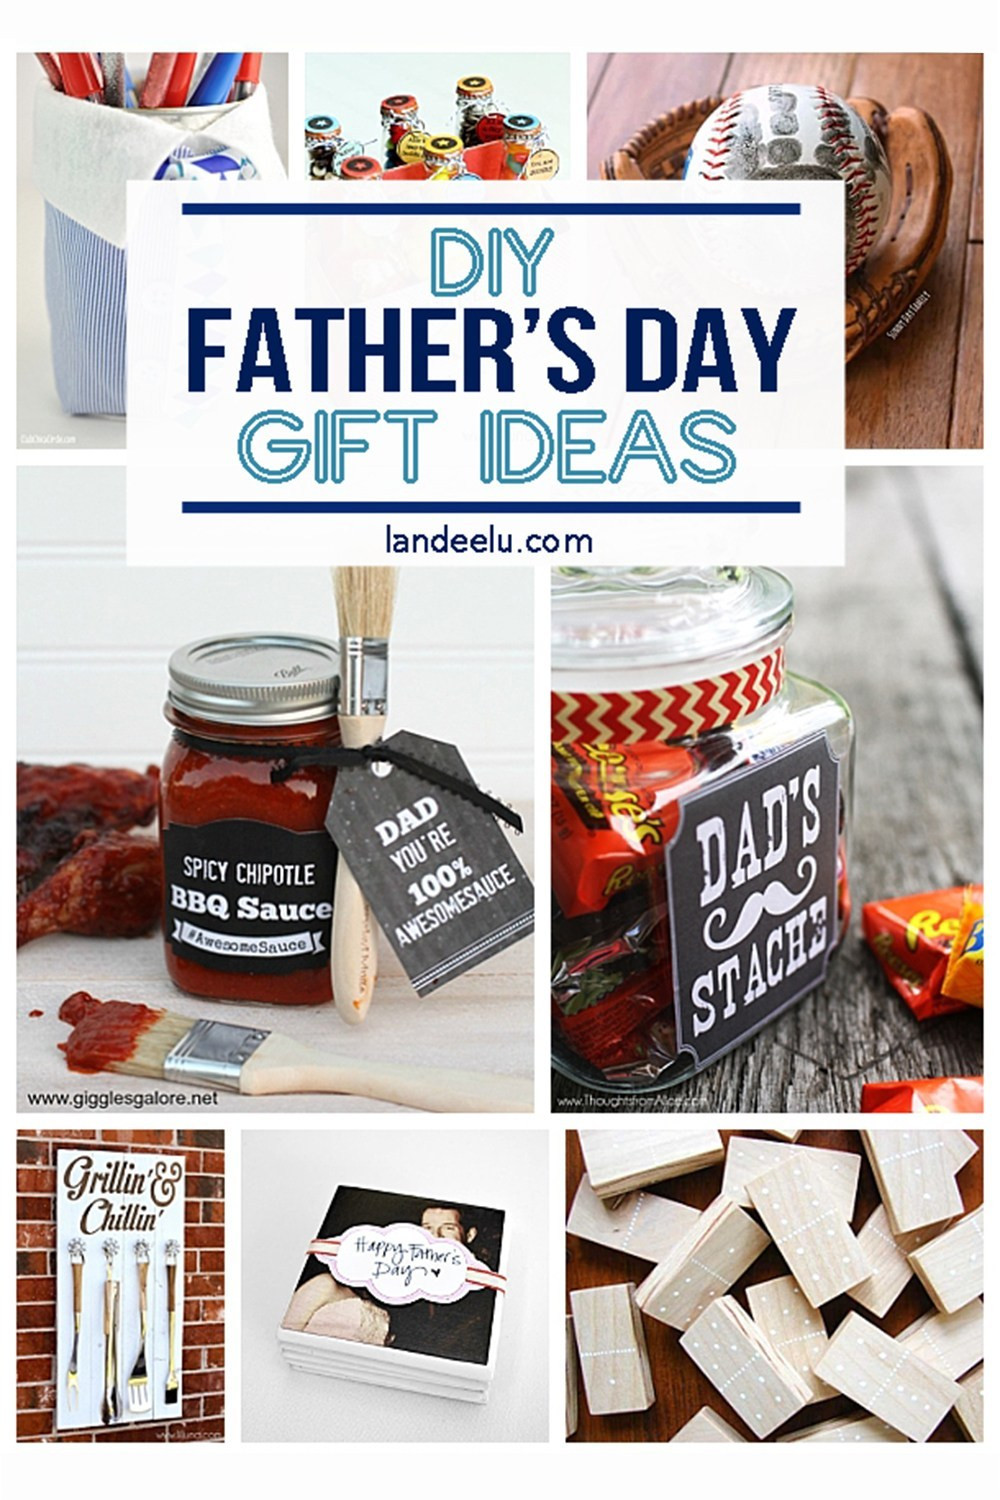 Best ideas about Fathers Day Gift DIY . Save or Pin 21 DIY Father s Day Gifts to Celebrate Dad landeelu Now.